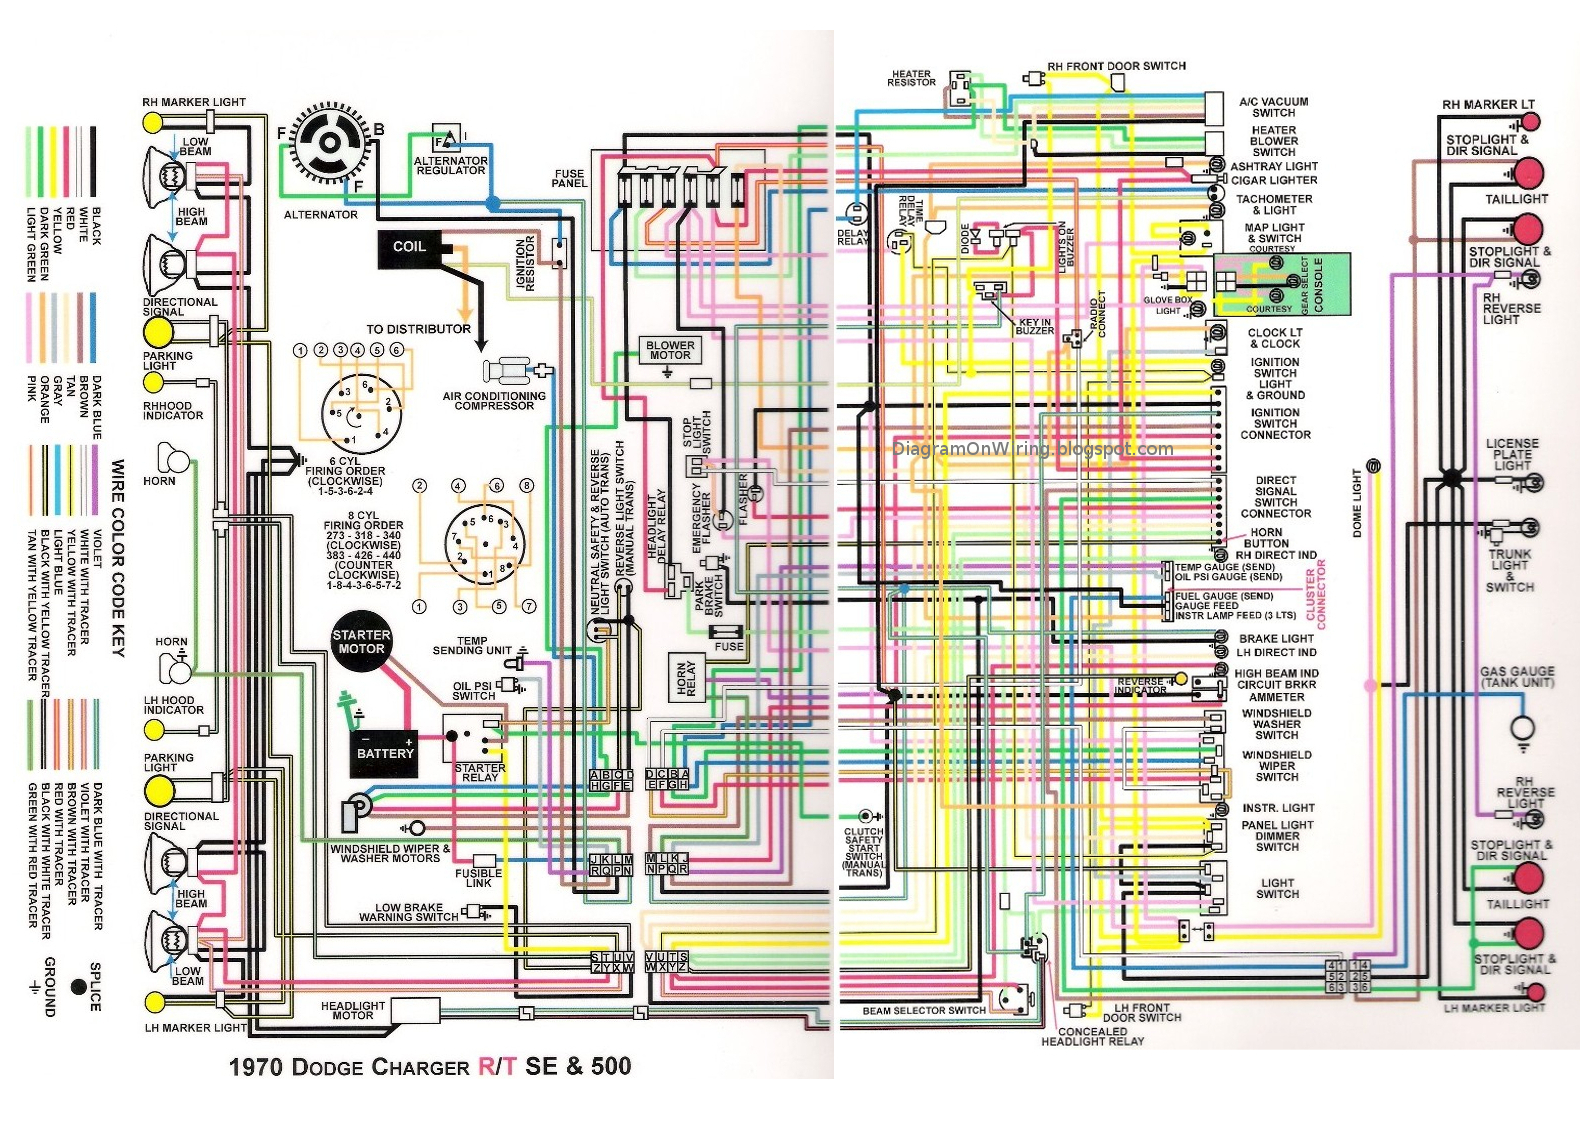 1970dodgechargerRT Colorwiringdiagram chrysler diagrams 1972 dodge charger wiring diagram at n-0.co